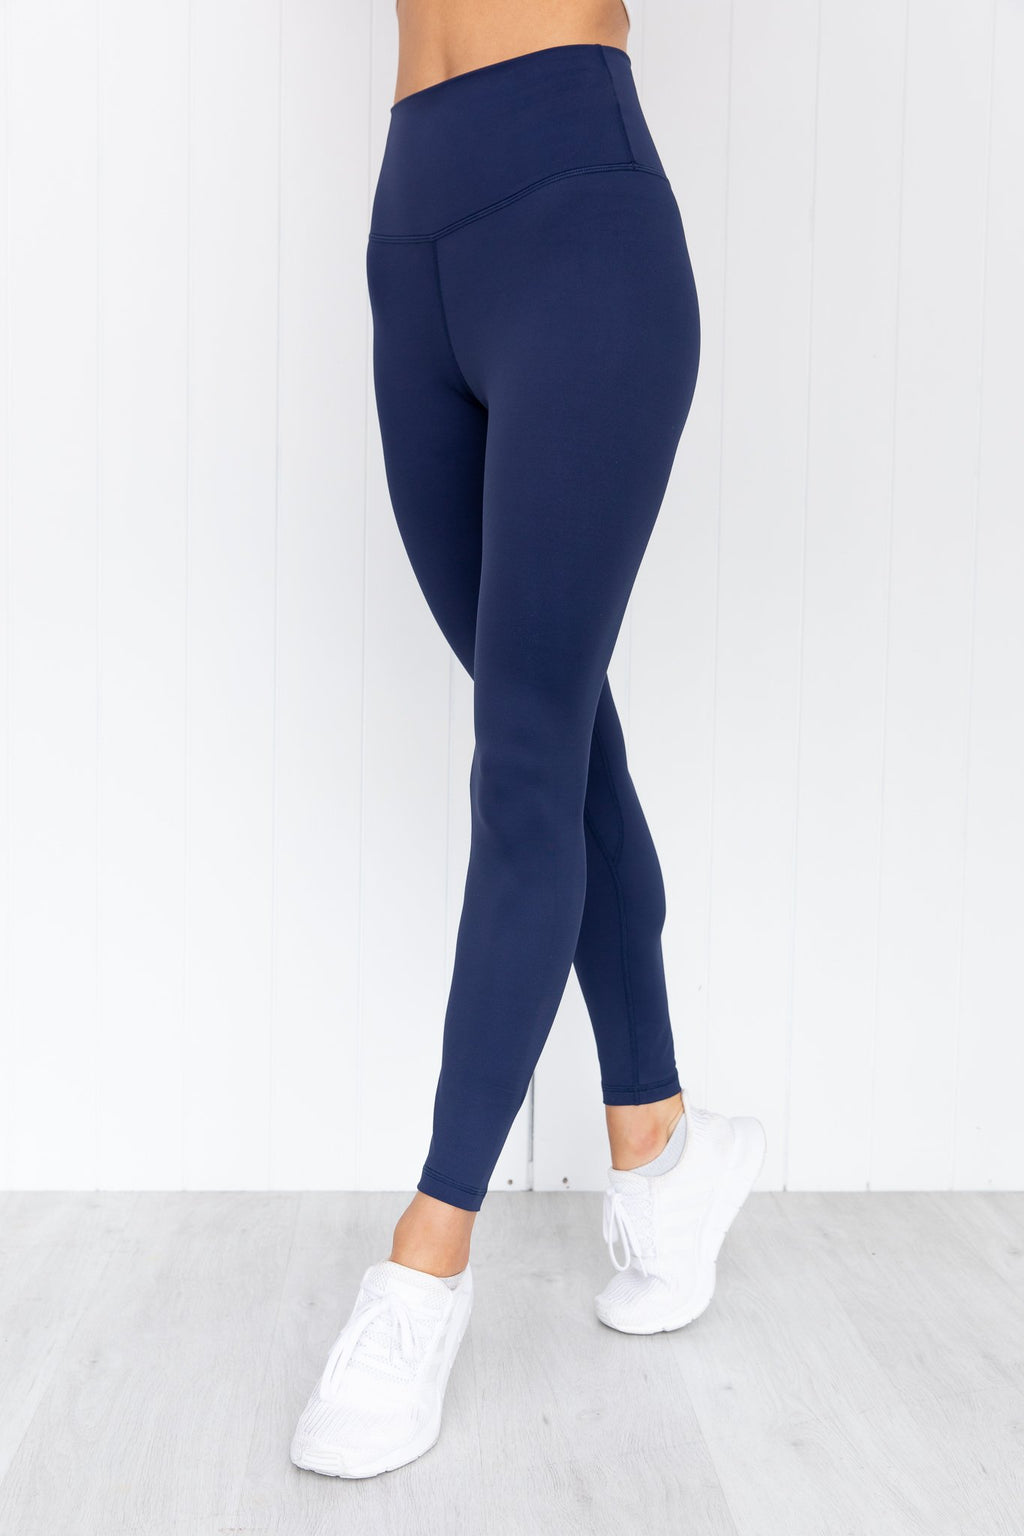 **Pre-Order** Panther High Rise Leggings - Midnight Navy